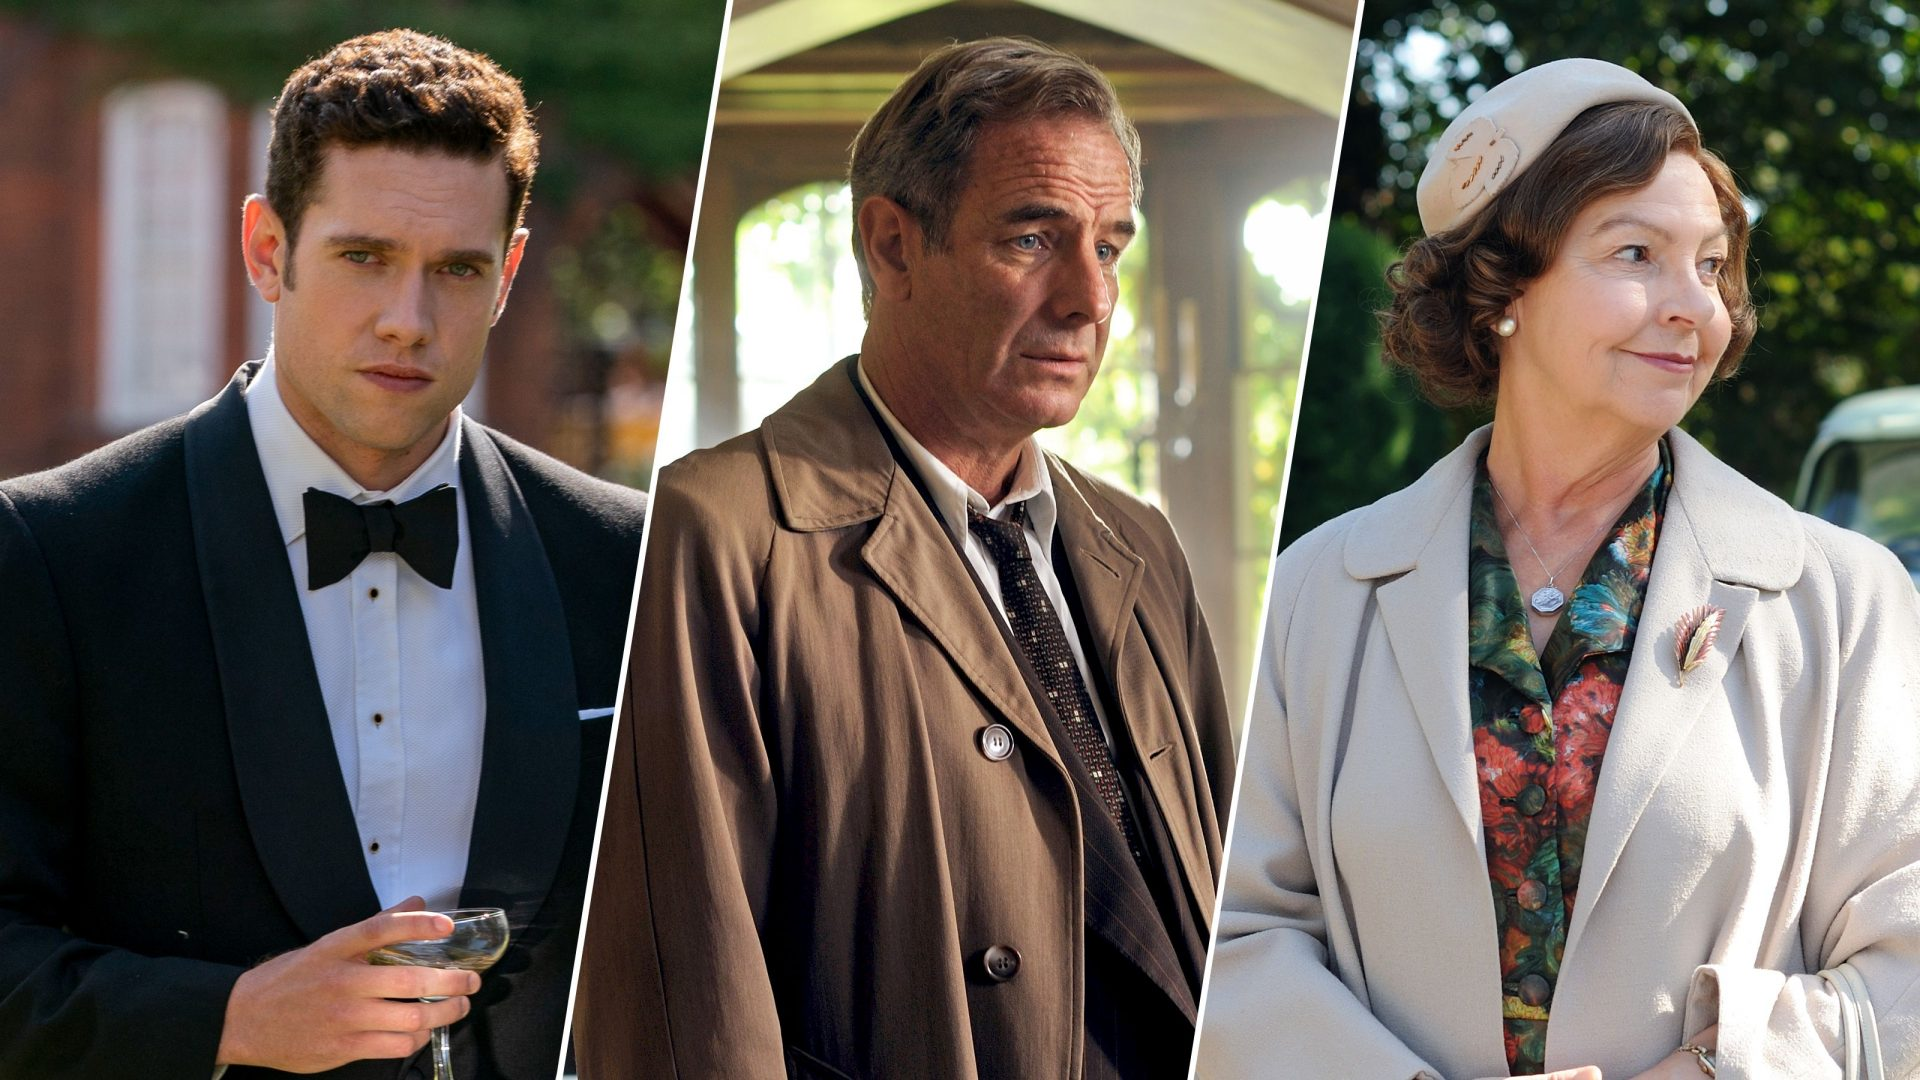 Tom Brittney, Robson Green and Tessa Peake-Jones from the Grantchester Cast